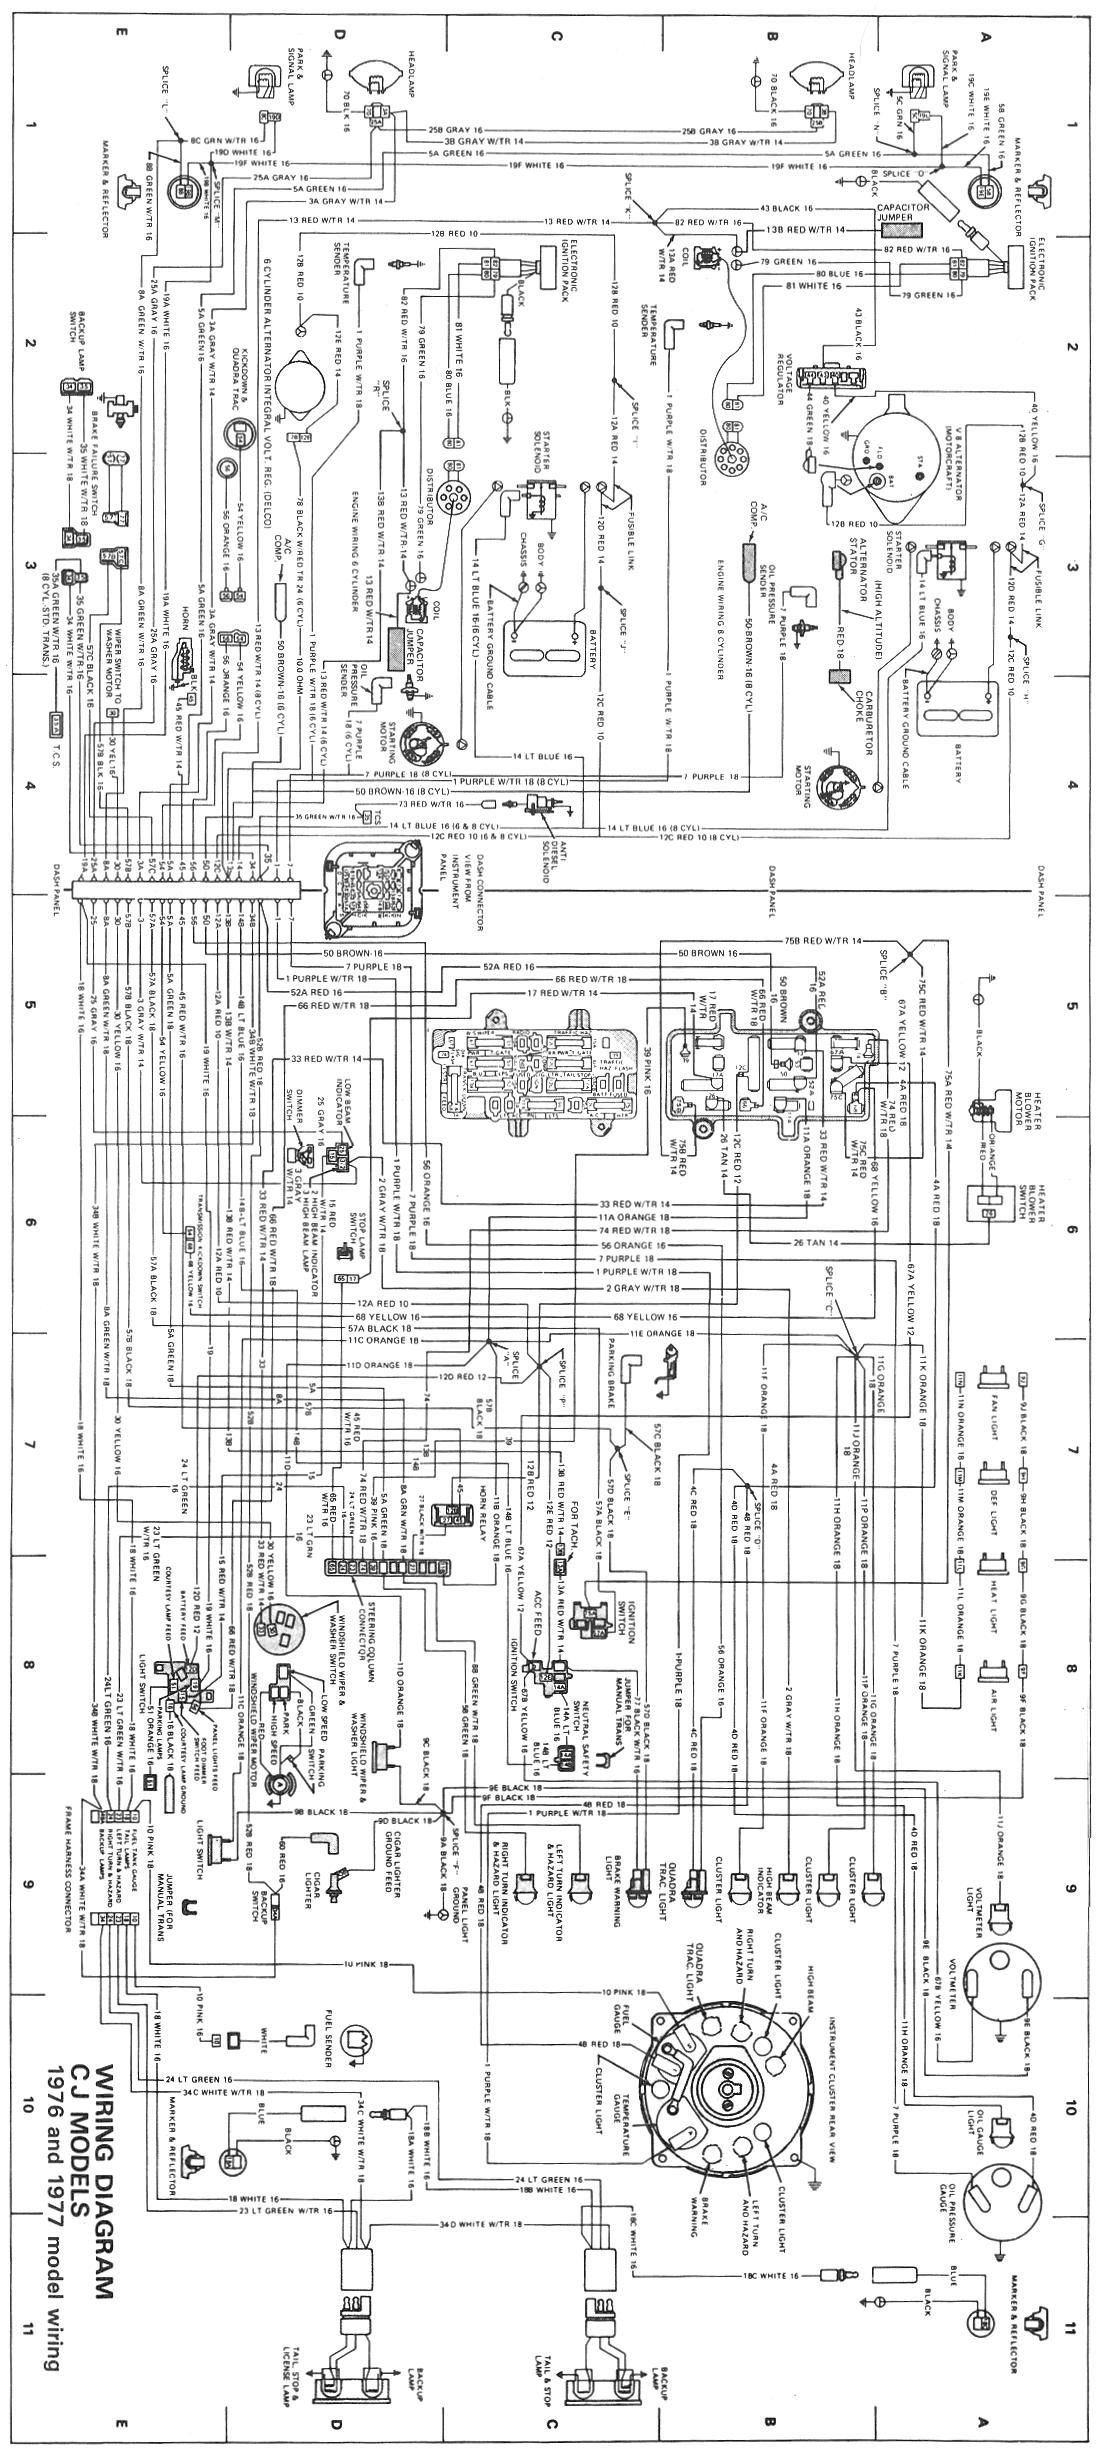 jeep wiring diagrams 1976 and 1977 cj jeep wiring pinterest rh pinterest com 1984 Jeep CJ7 Wiring-Diagram 2000 Jeep Grand Cherokee Wiring Schematic